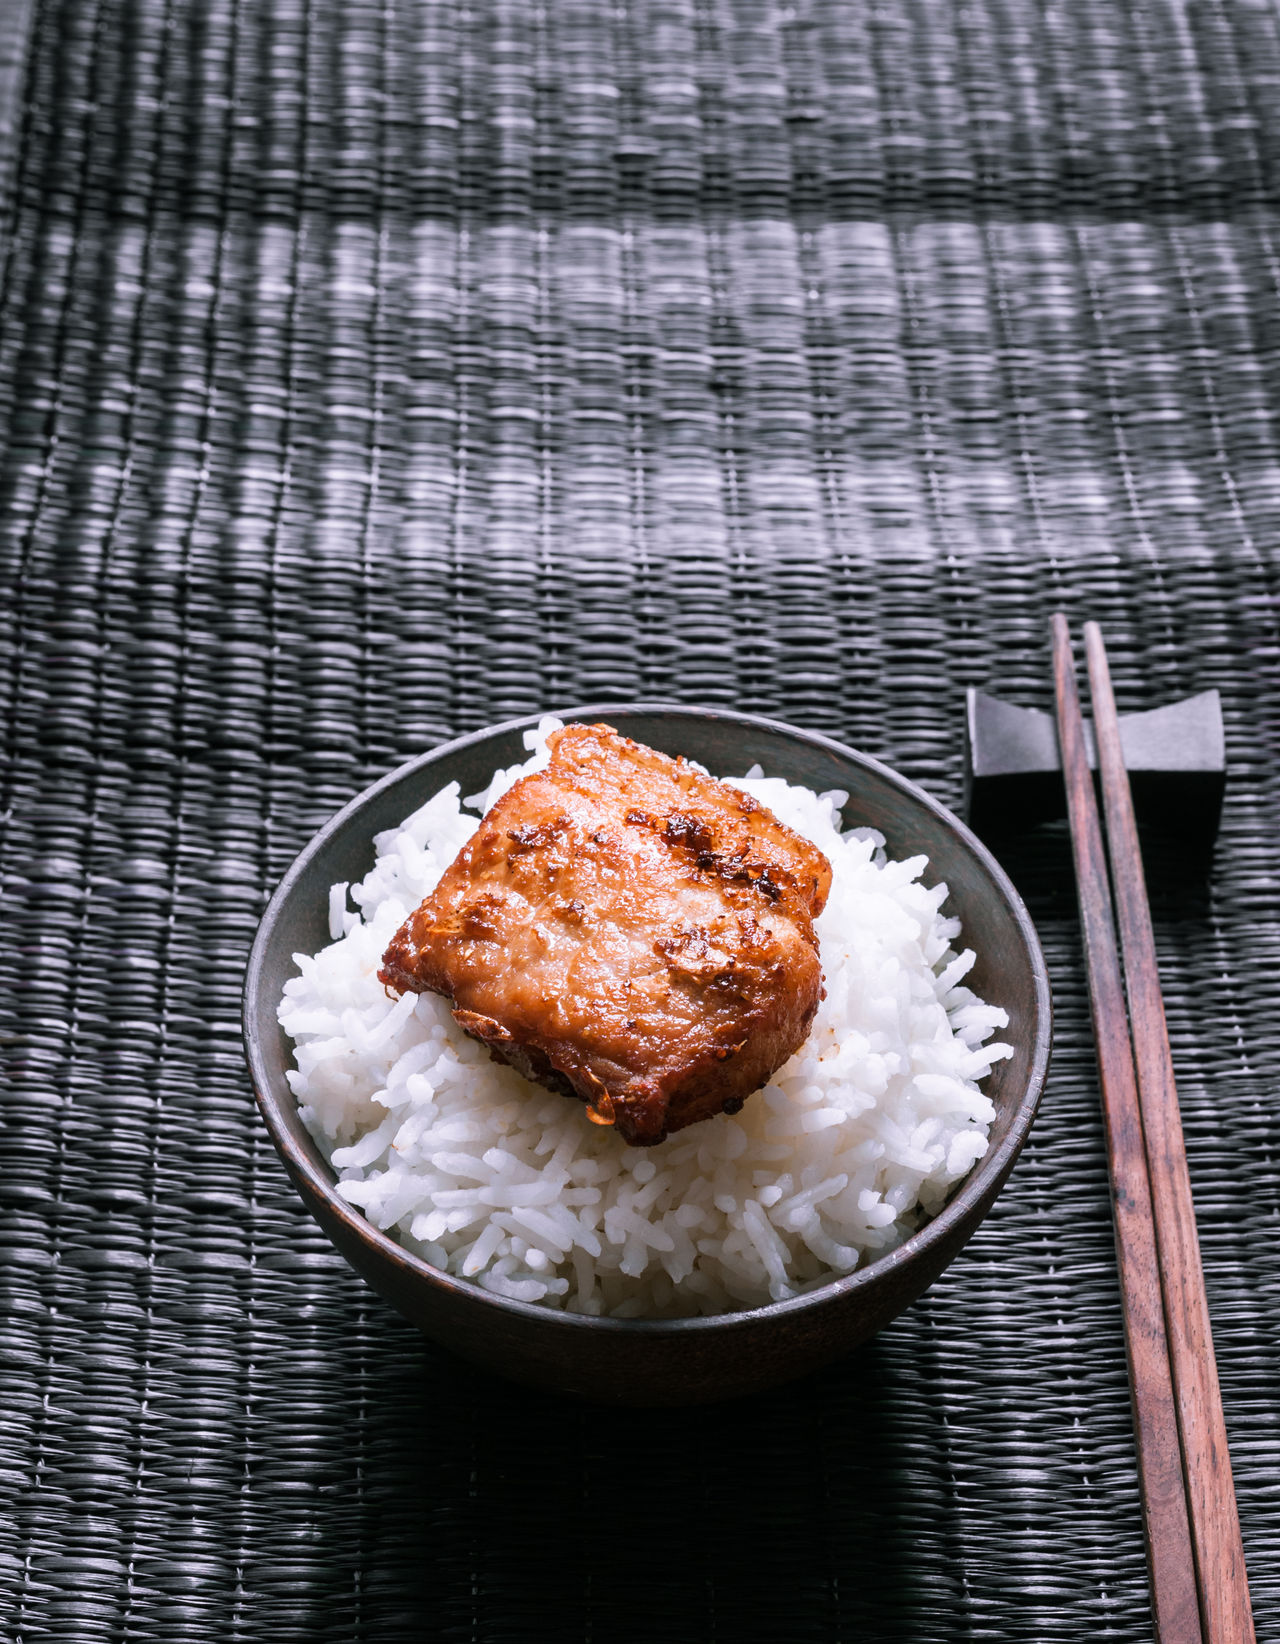 Asian Culture Asian Food Backdrop Background Bowl Close-up Food Food And Drink Freshness Indoors  Meat No People Plate Pork Rice